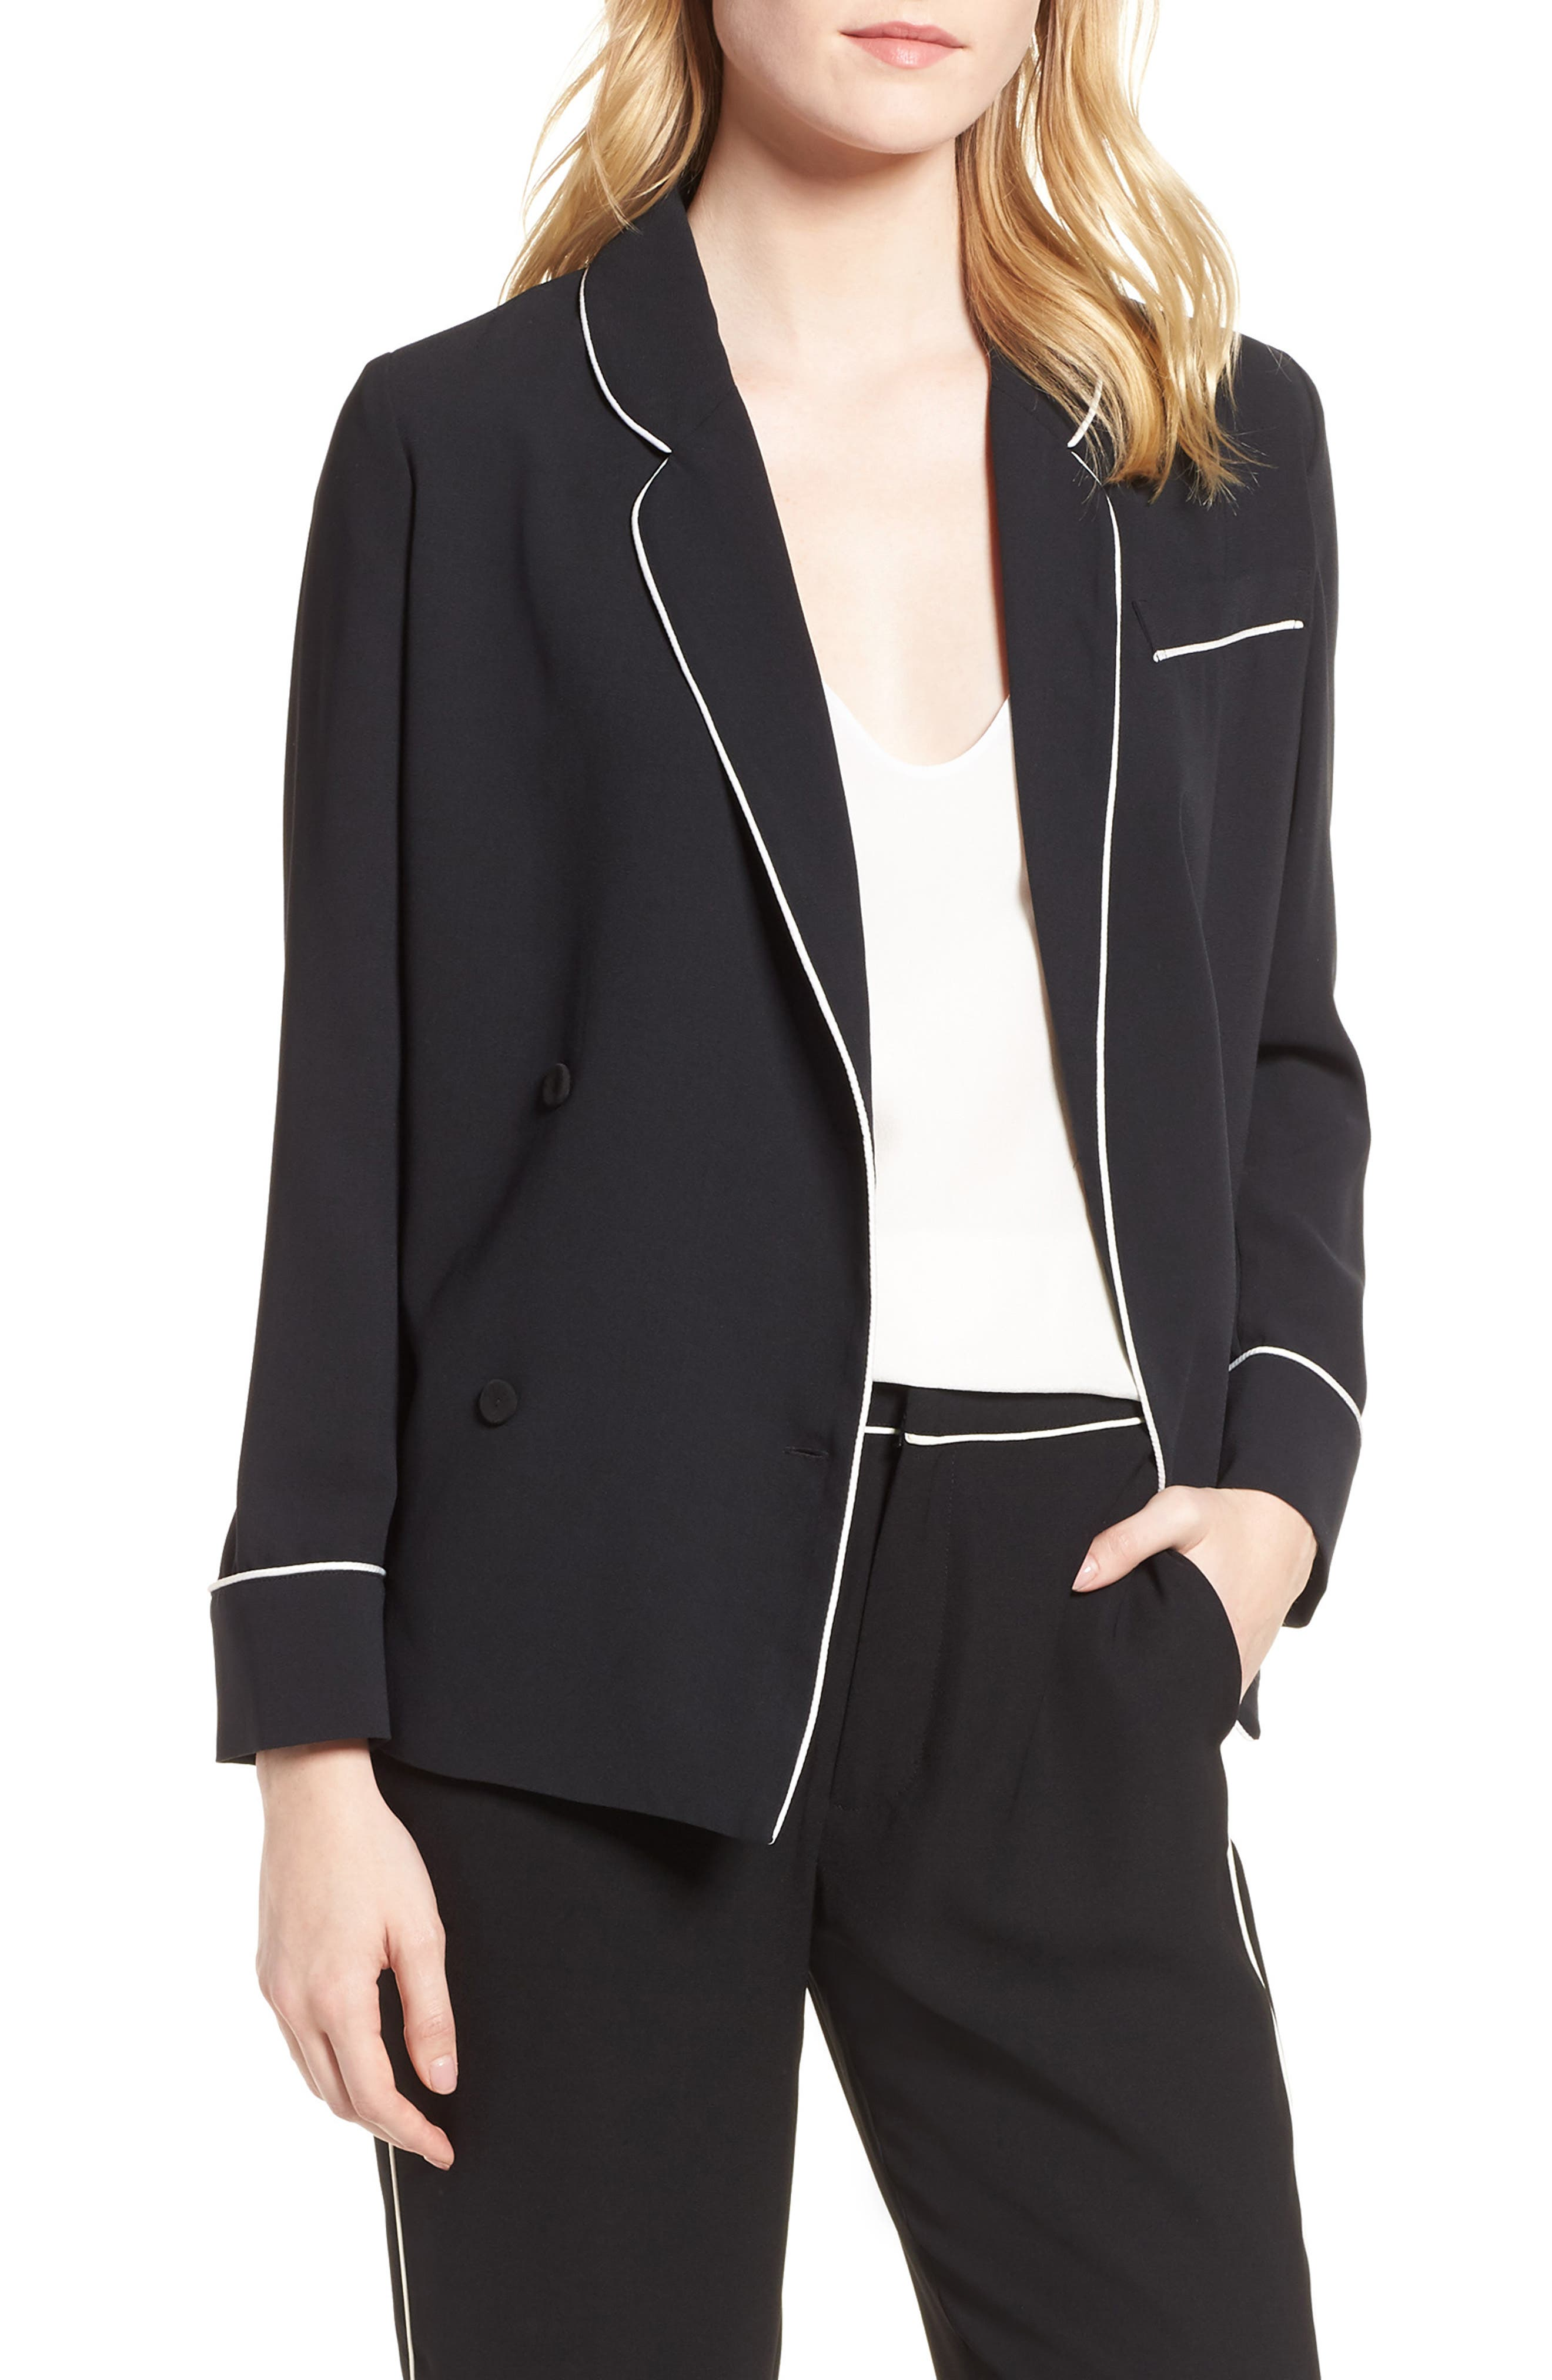 Double Breasted Jacket,                             Main thumbnail 1, color,                             BLACK/ BRIGHT WHITE PIPING